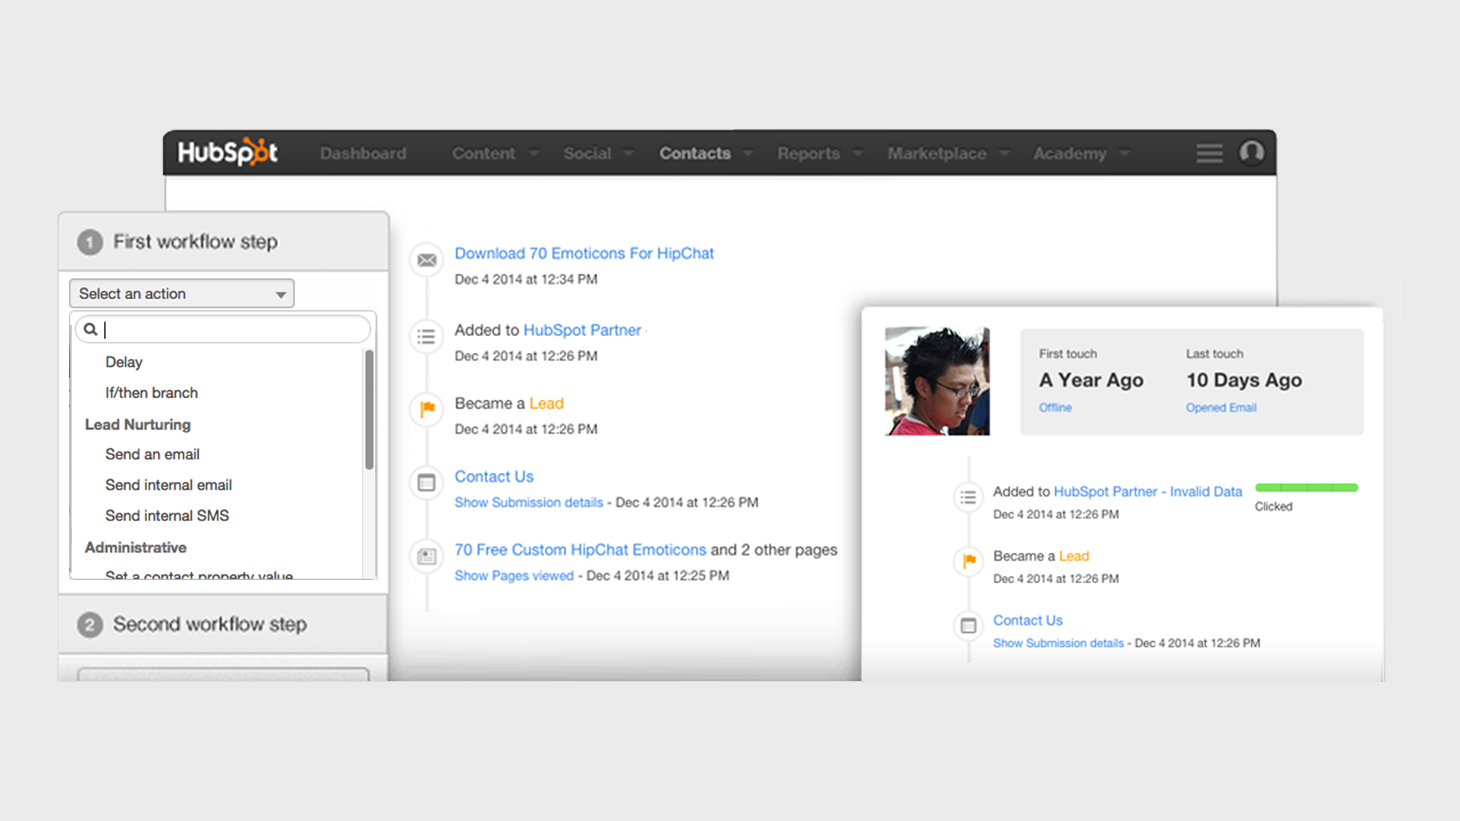 Hubspot contact records and workflows